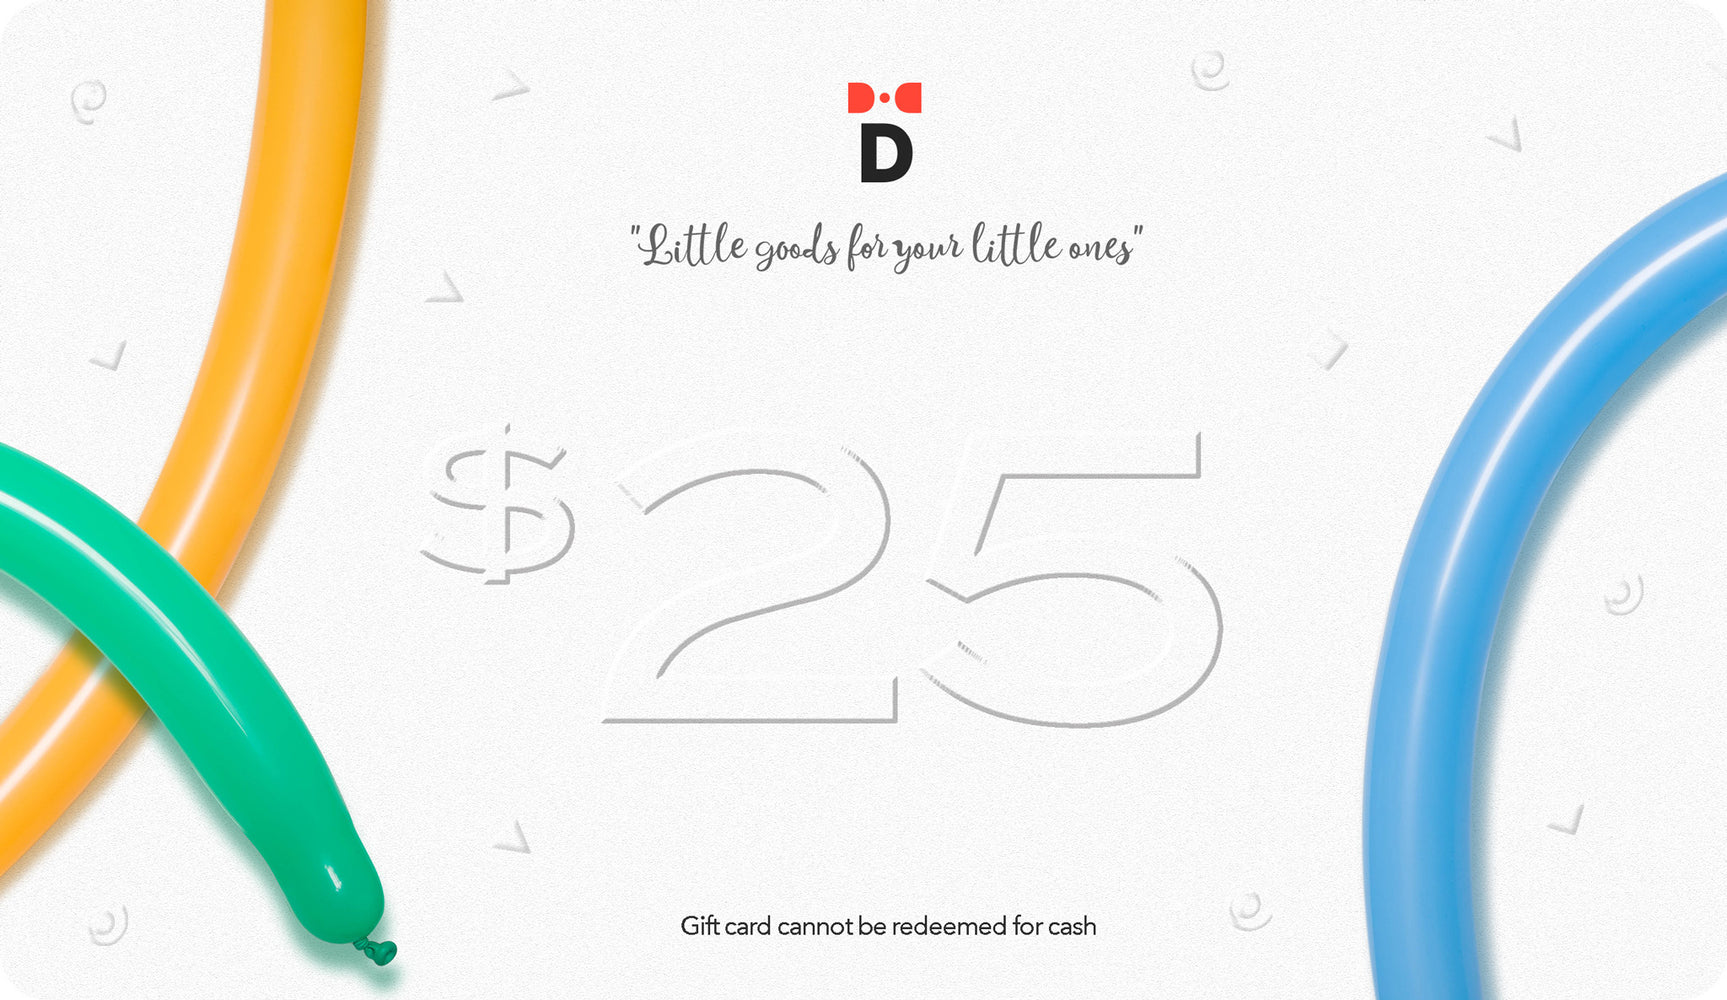 Premium Children's Accessories Gift Card $25